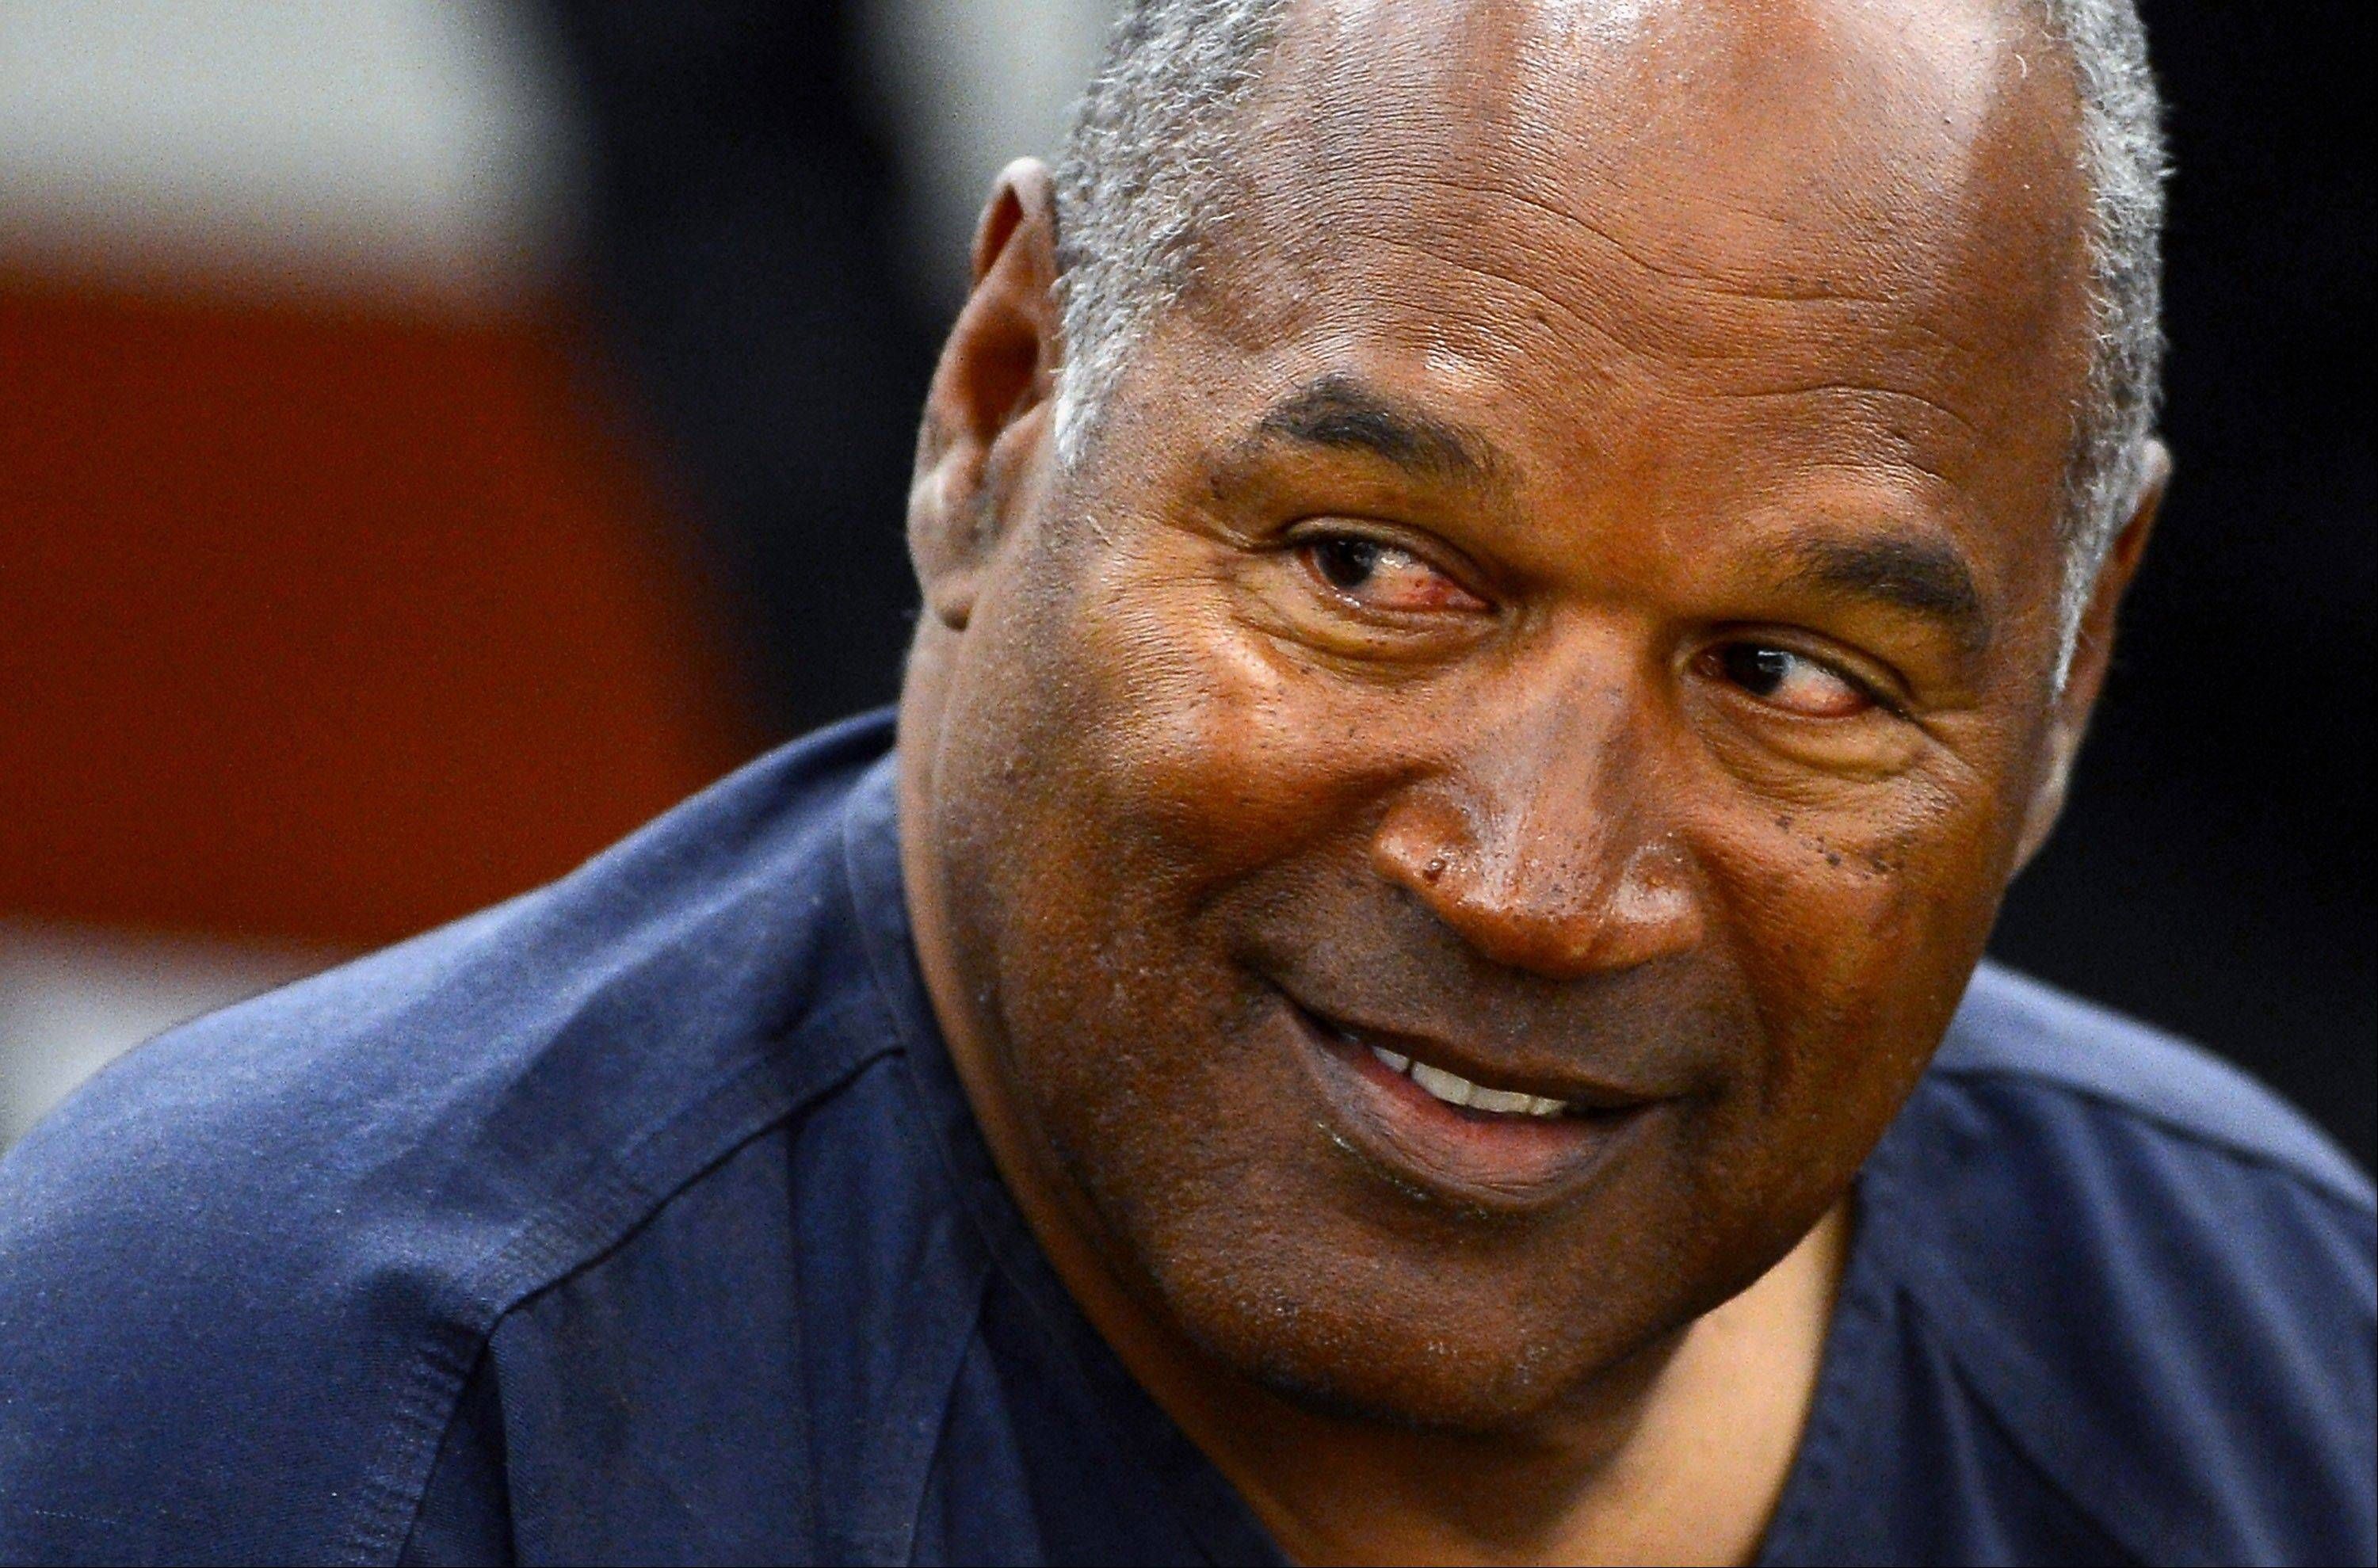 O.J. Simpson appears for the second day of an evidentiary hearing in Clark County District Court, Tuesday, May 14, 2013 in Las Vegas. The hearing is aimed at proving Simpson's trial lawyer, Yale Galanter, had conflicted interests and shouldn't have handled Simpson's case. Simpson is serving nine to 33 years in prison for his 2008 conviction in the armed robbery of two sports memorabilia dealers in a Las Vegas hotel room.